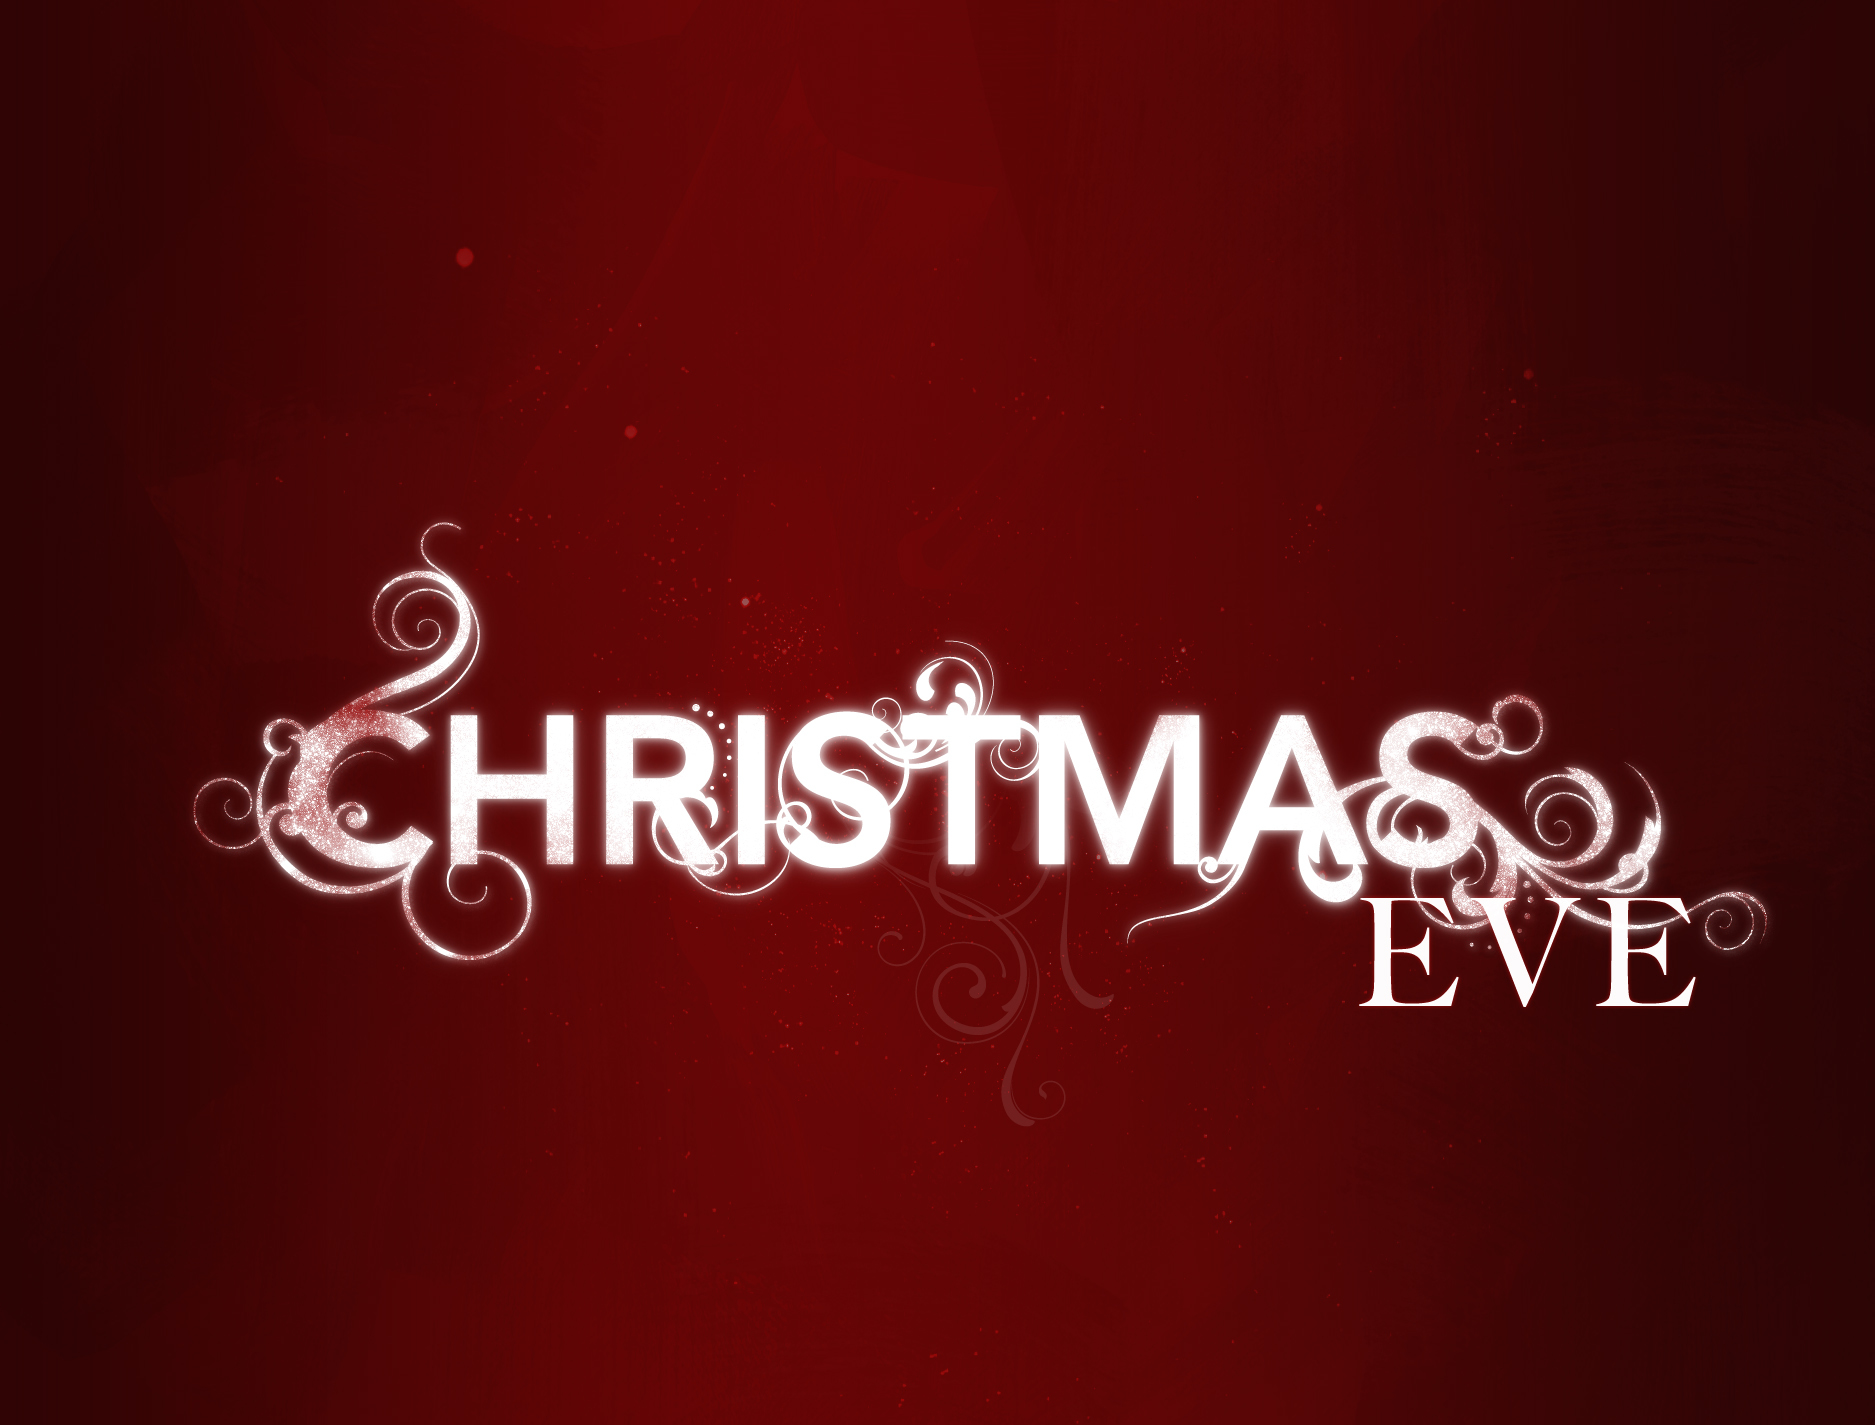 Pictures Of Christmas Eve